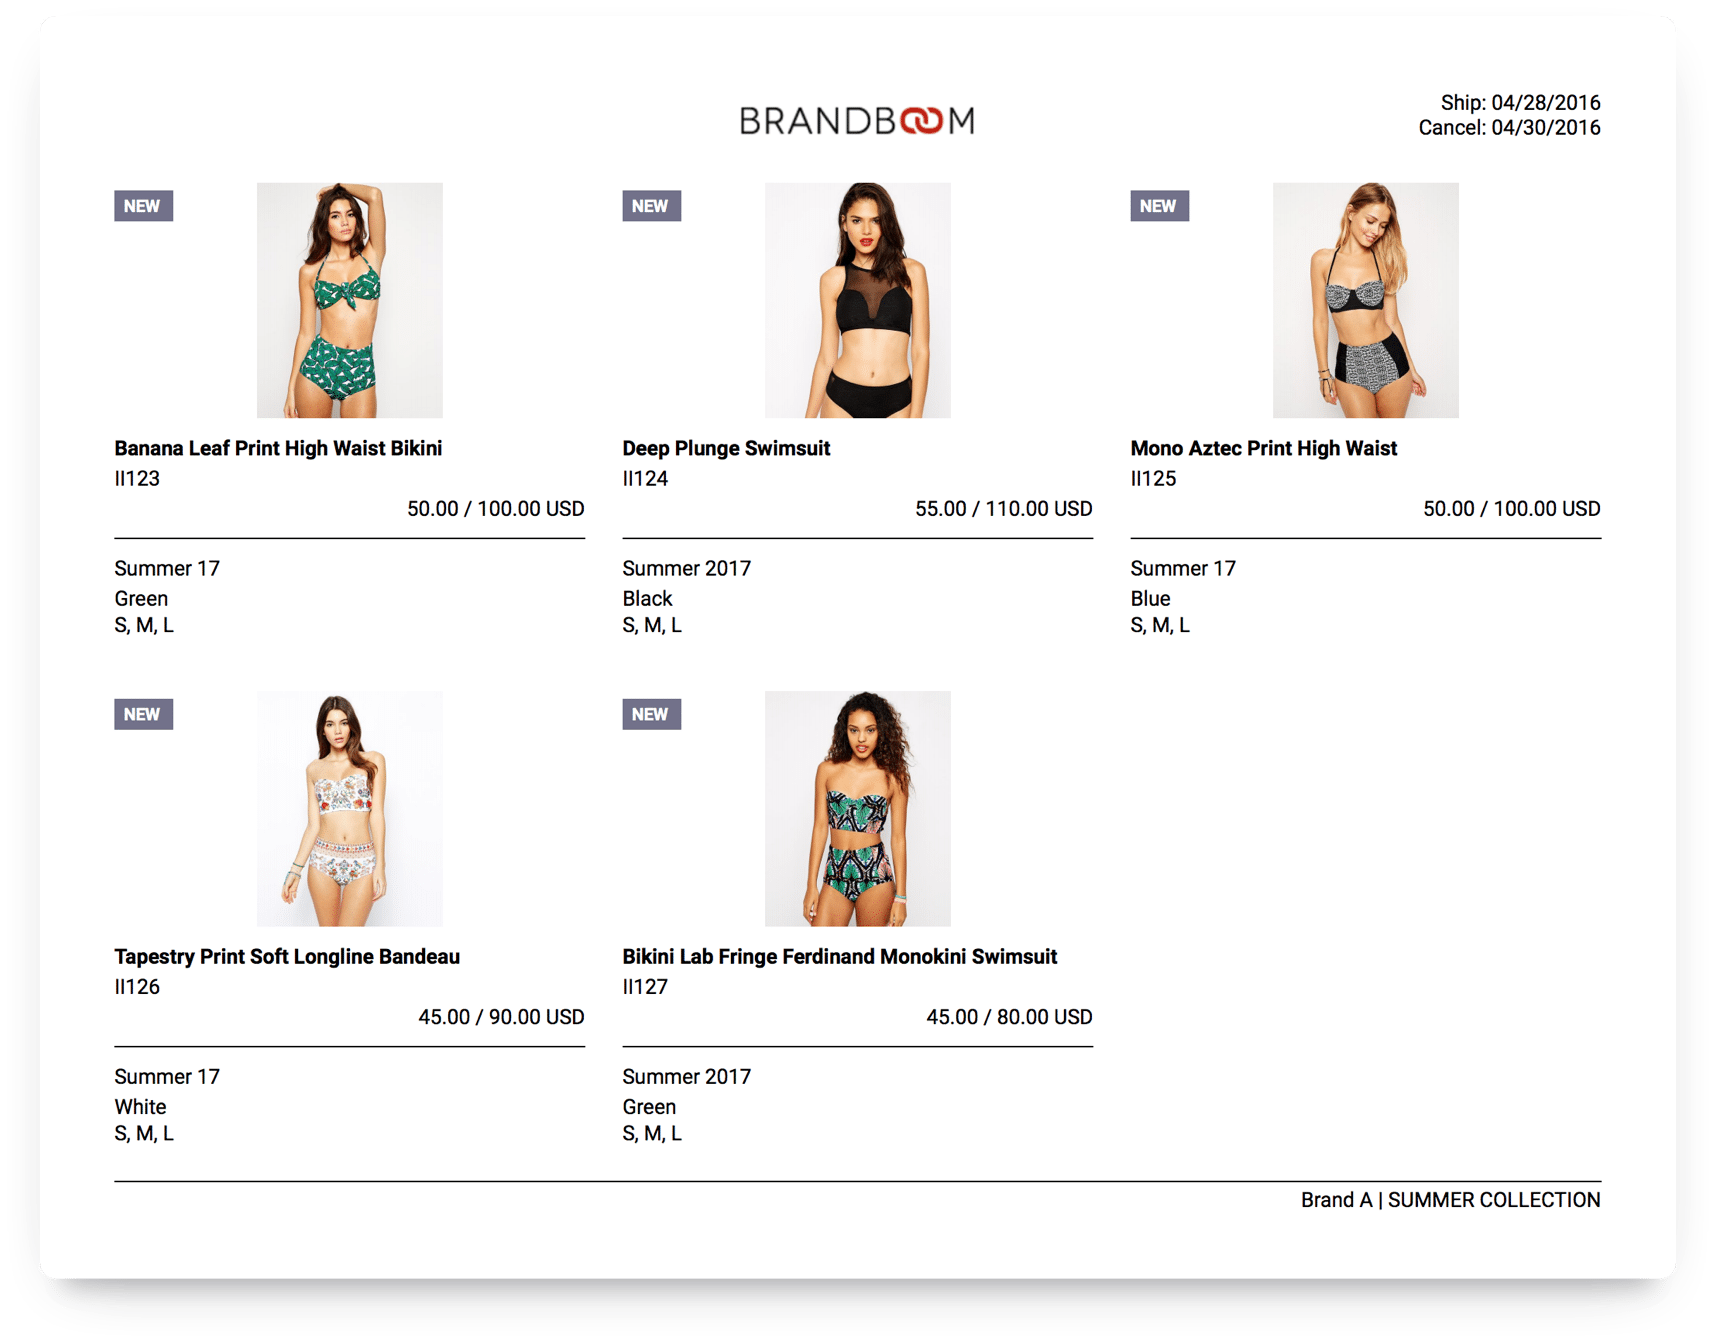 Brandboom linesheets make purchases more likely